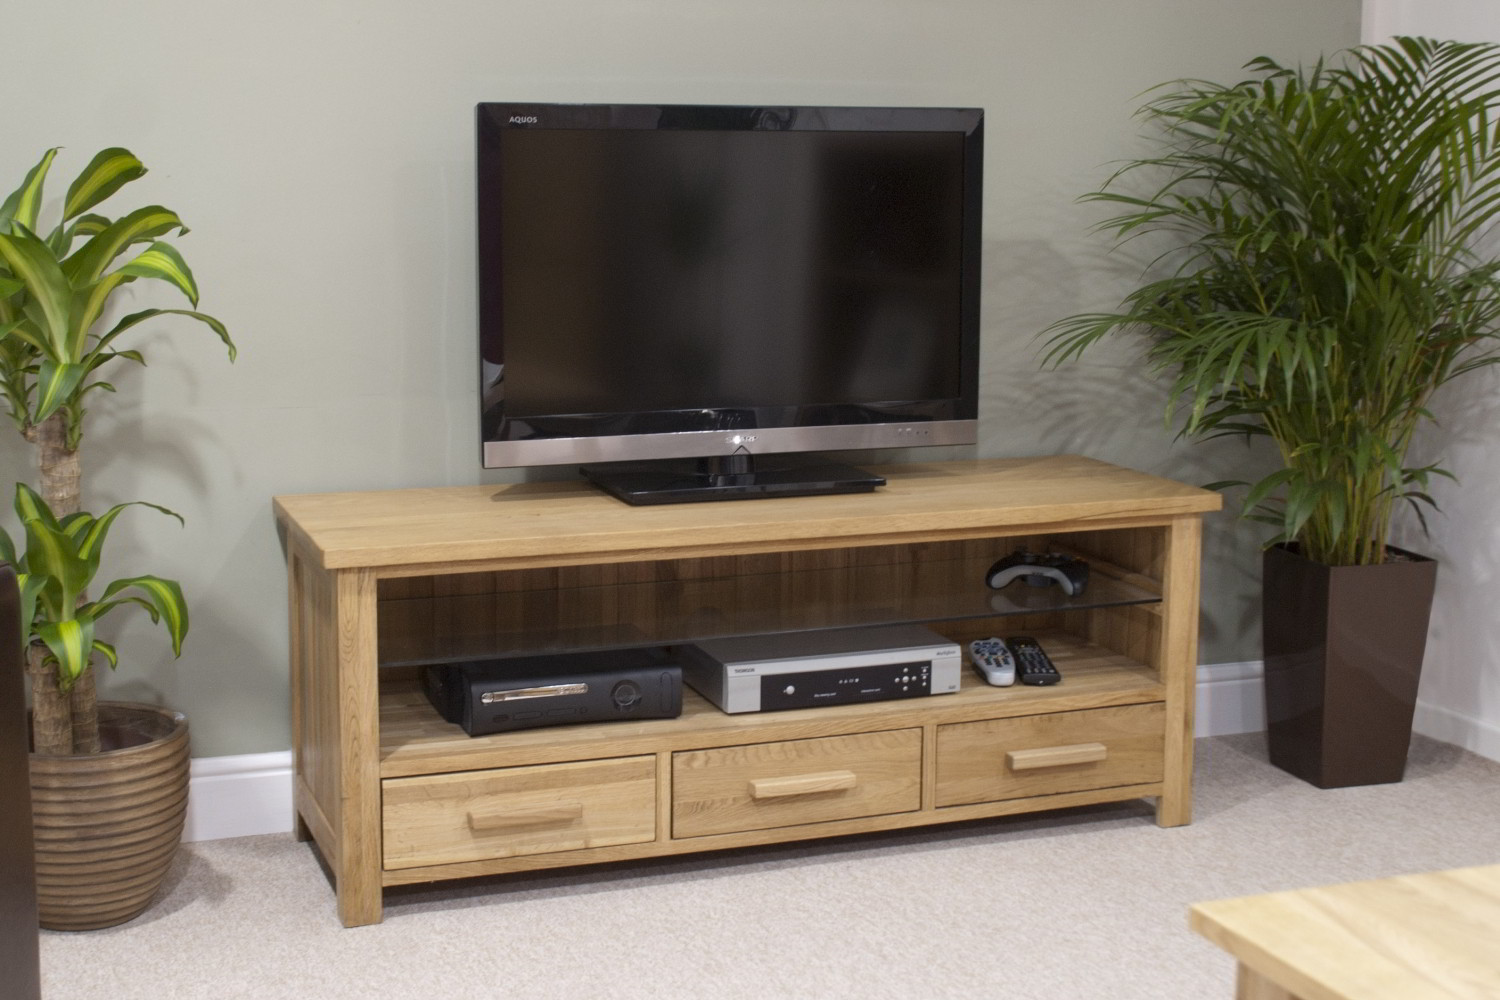 Eton Solid Oak Living Room Furniture Widescreen TV Cabinet Stand Unit Part 30